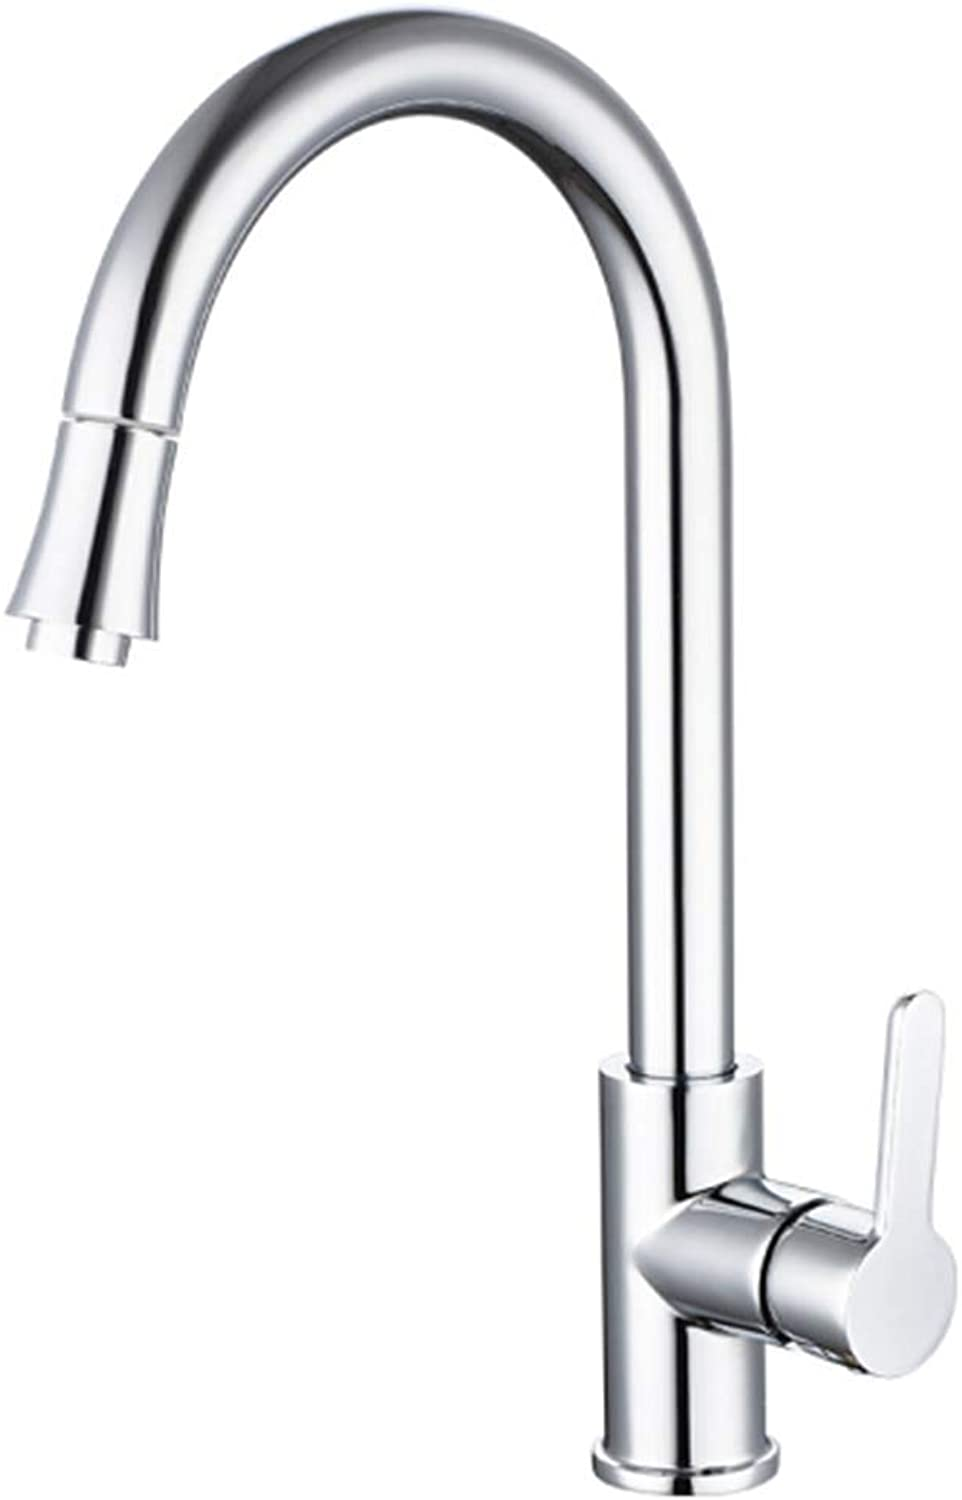 Kitchen Faucet Tapstainless Steelkitchen Faucet Probathroom Kitchen Faucet Sprinkler Copper Main Drawing Faucet Telescopic Flume Faucet Cold and Hot Water Faucet of Vegetable Washing Pot